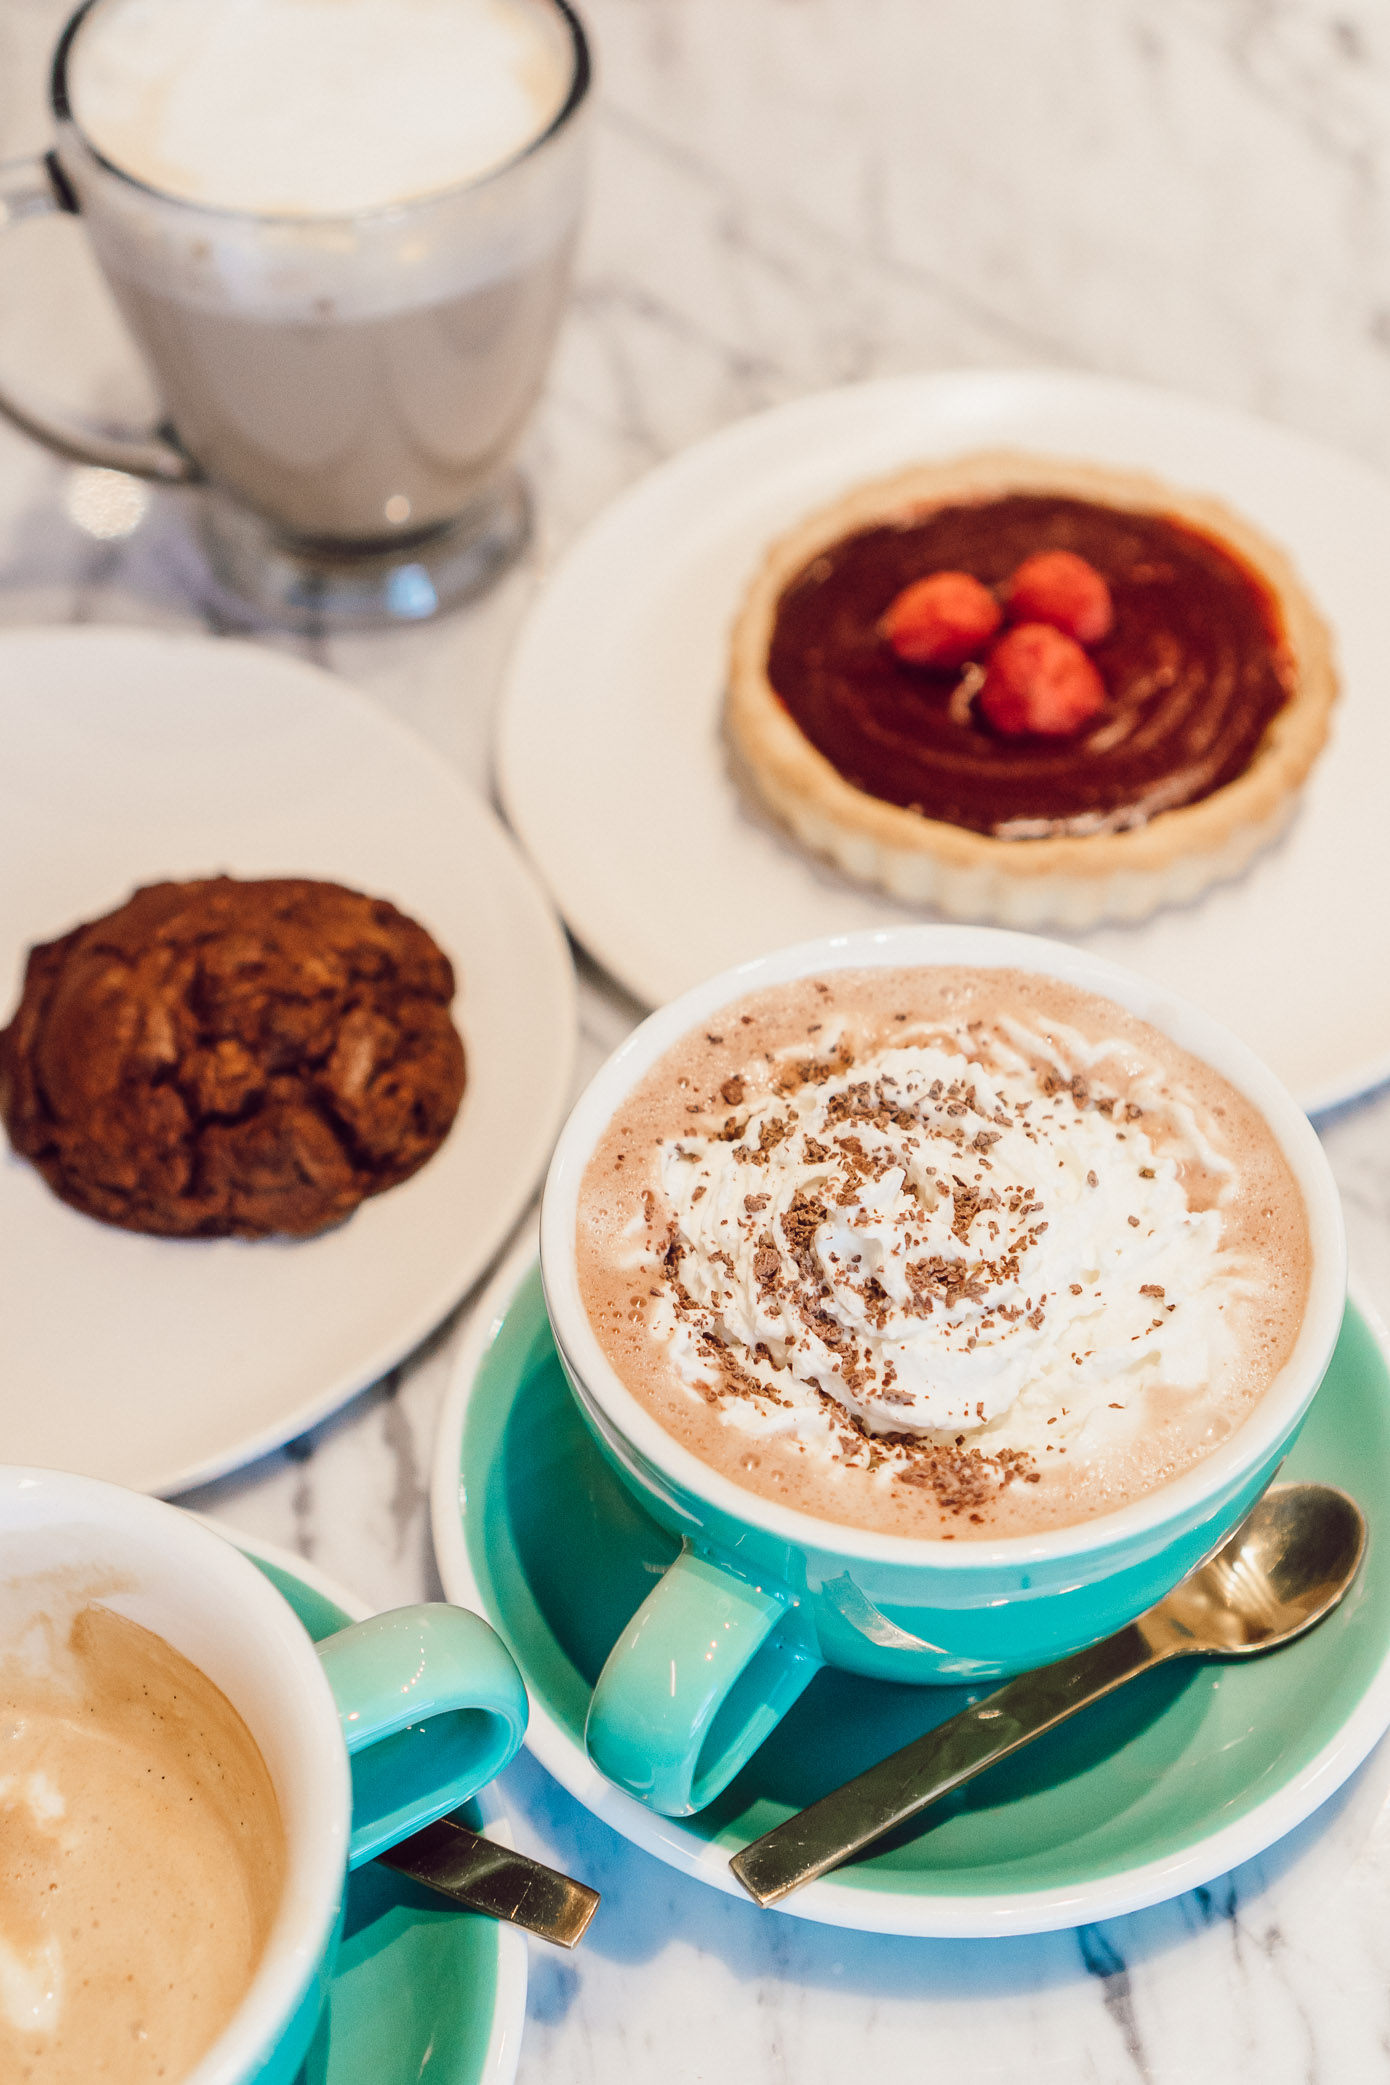 Markham & Fitz Chocolate | Bentonville Arkansas Travel Diary featured on Louella Reese Blog | Unexpected Long Weekend Getaway